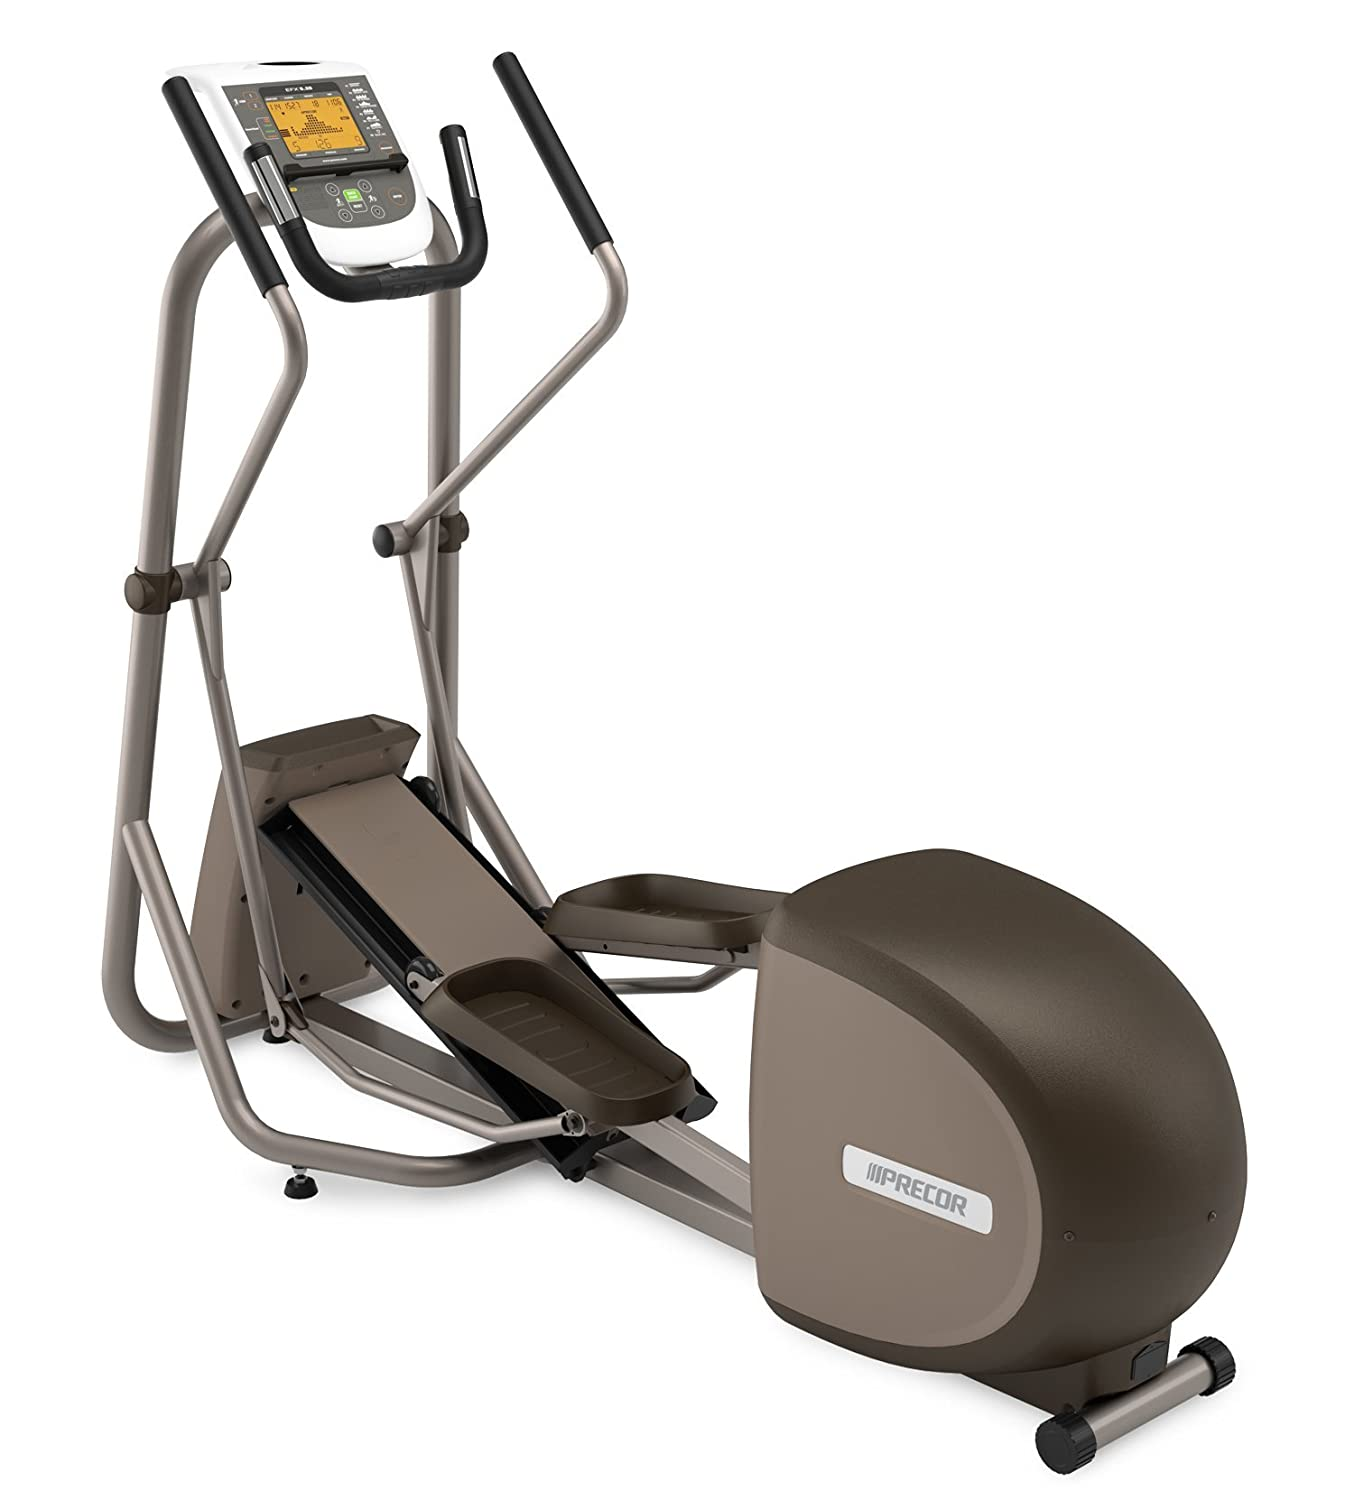 Small Elliptical For Home  Small Elliptical Exercise - Small elliptical for home